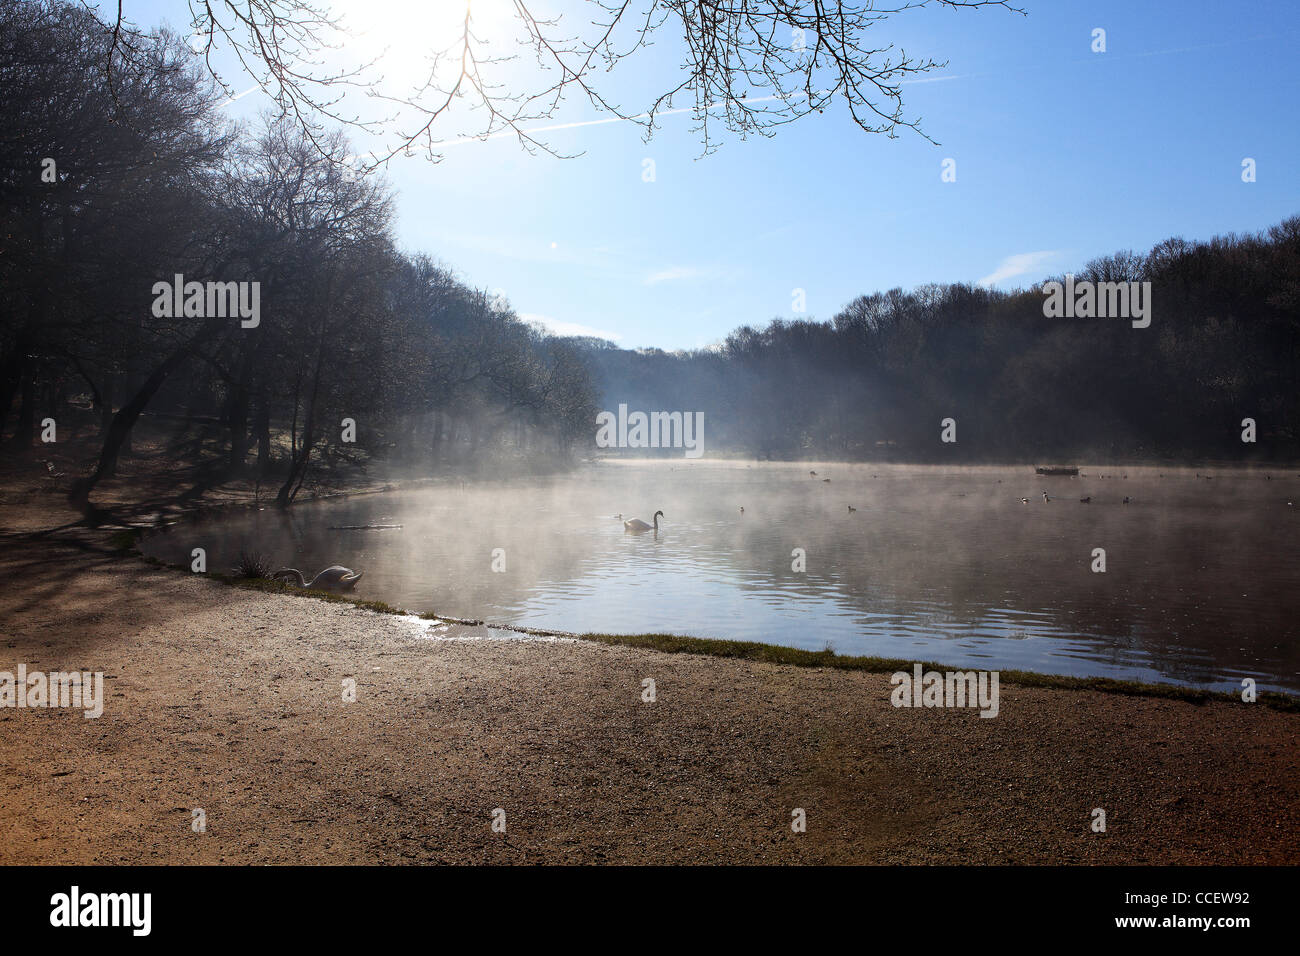 Wildfowl on a misty lake - Stock Image